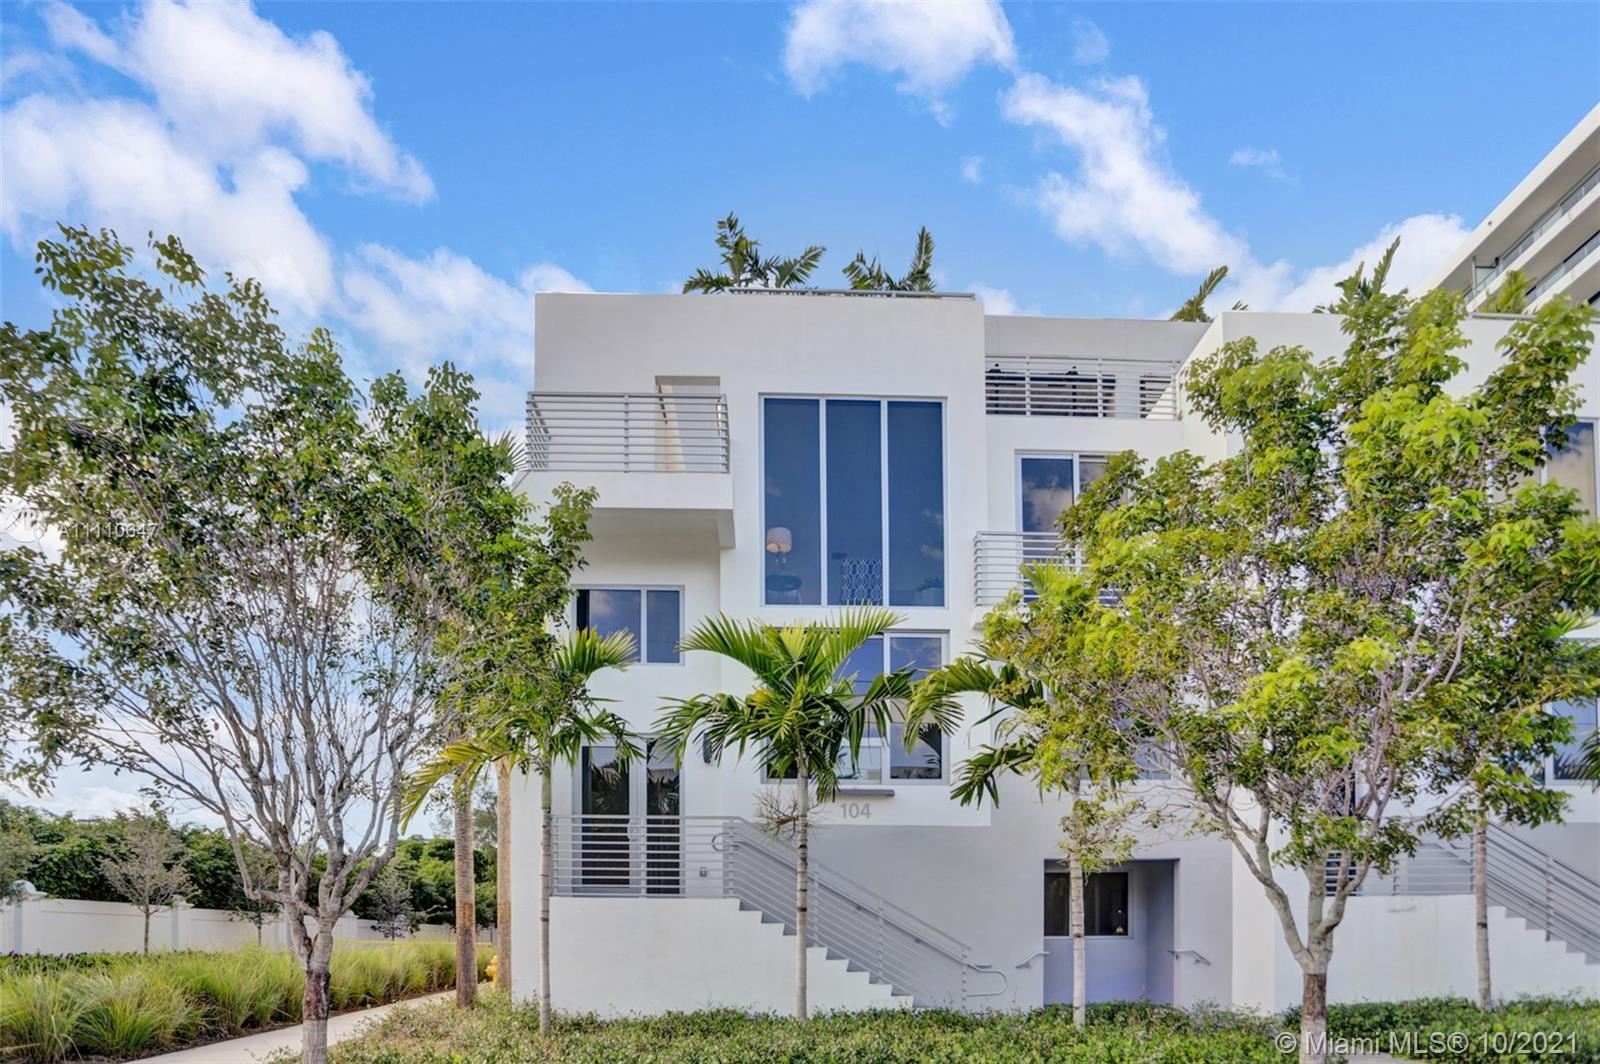 The most luxurious townhouse in Aventura with a Walkability Factor like no other in Aventura can now